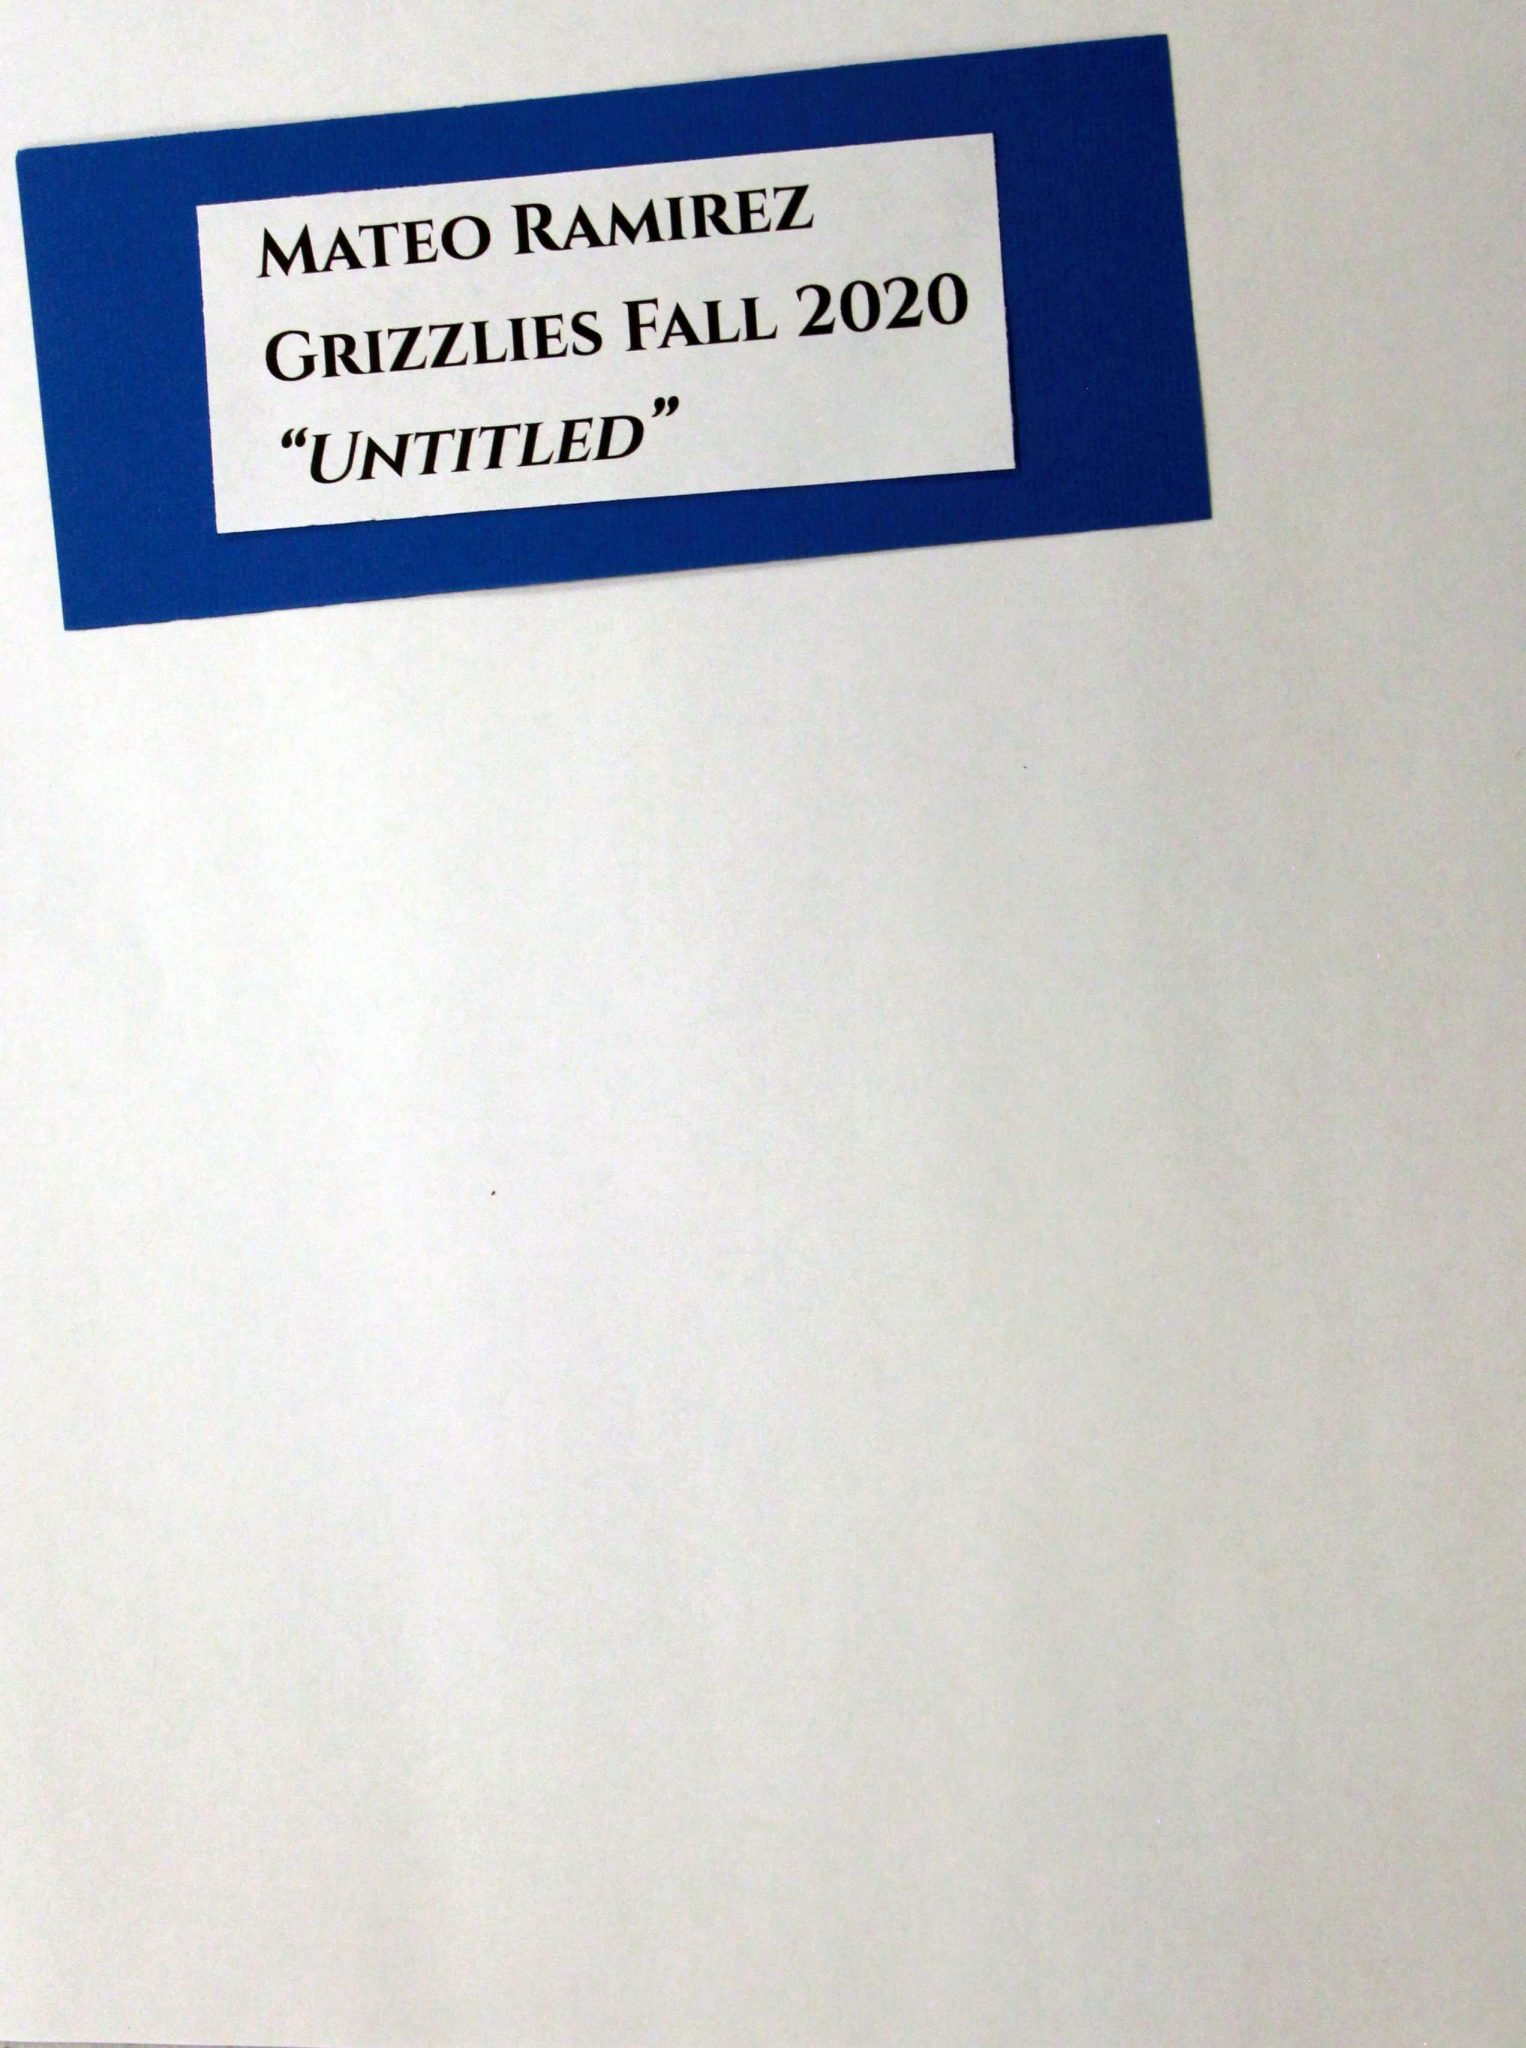 Mateo Ramirez, of Grizzlies group, drawing, Fall 2020